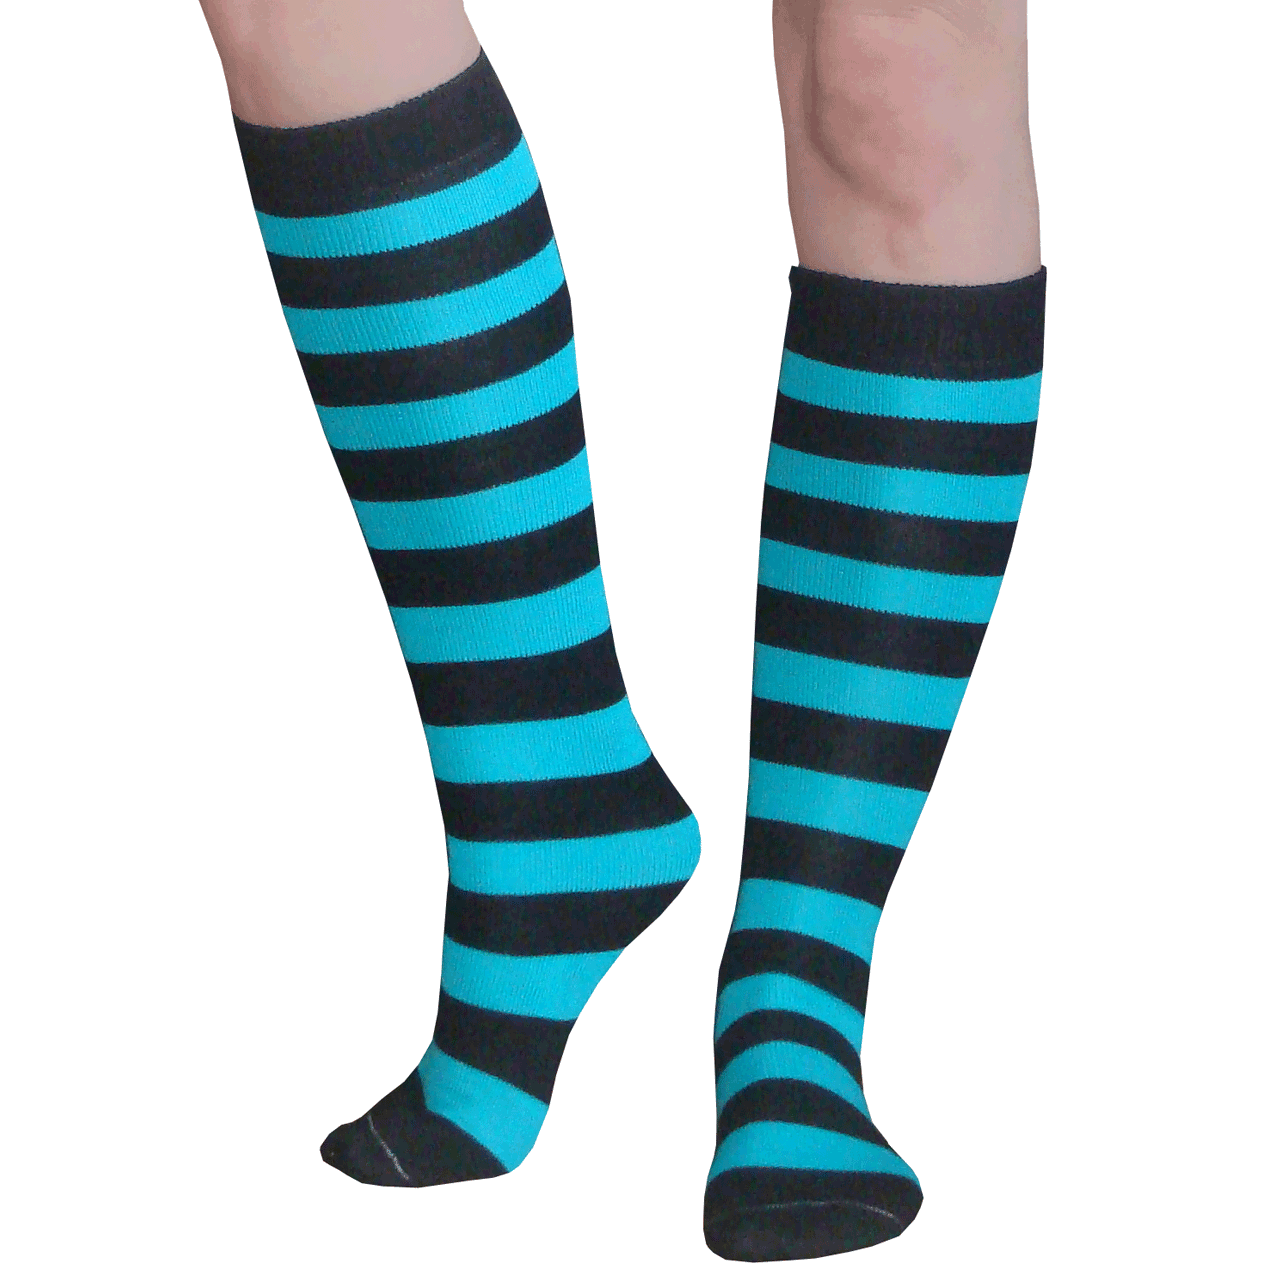 Sep 03, · Black & White Cushioned Knee-High Crew Socks is rated out of 5 by Rated 5 out of 5 by ShonaKatren from Looks great I've always had thicker than average calves so I was kind of wary about this purchase but they actually fit fine/5(14).